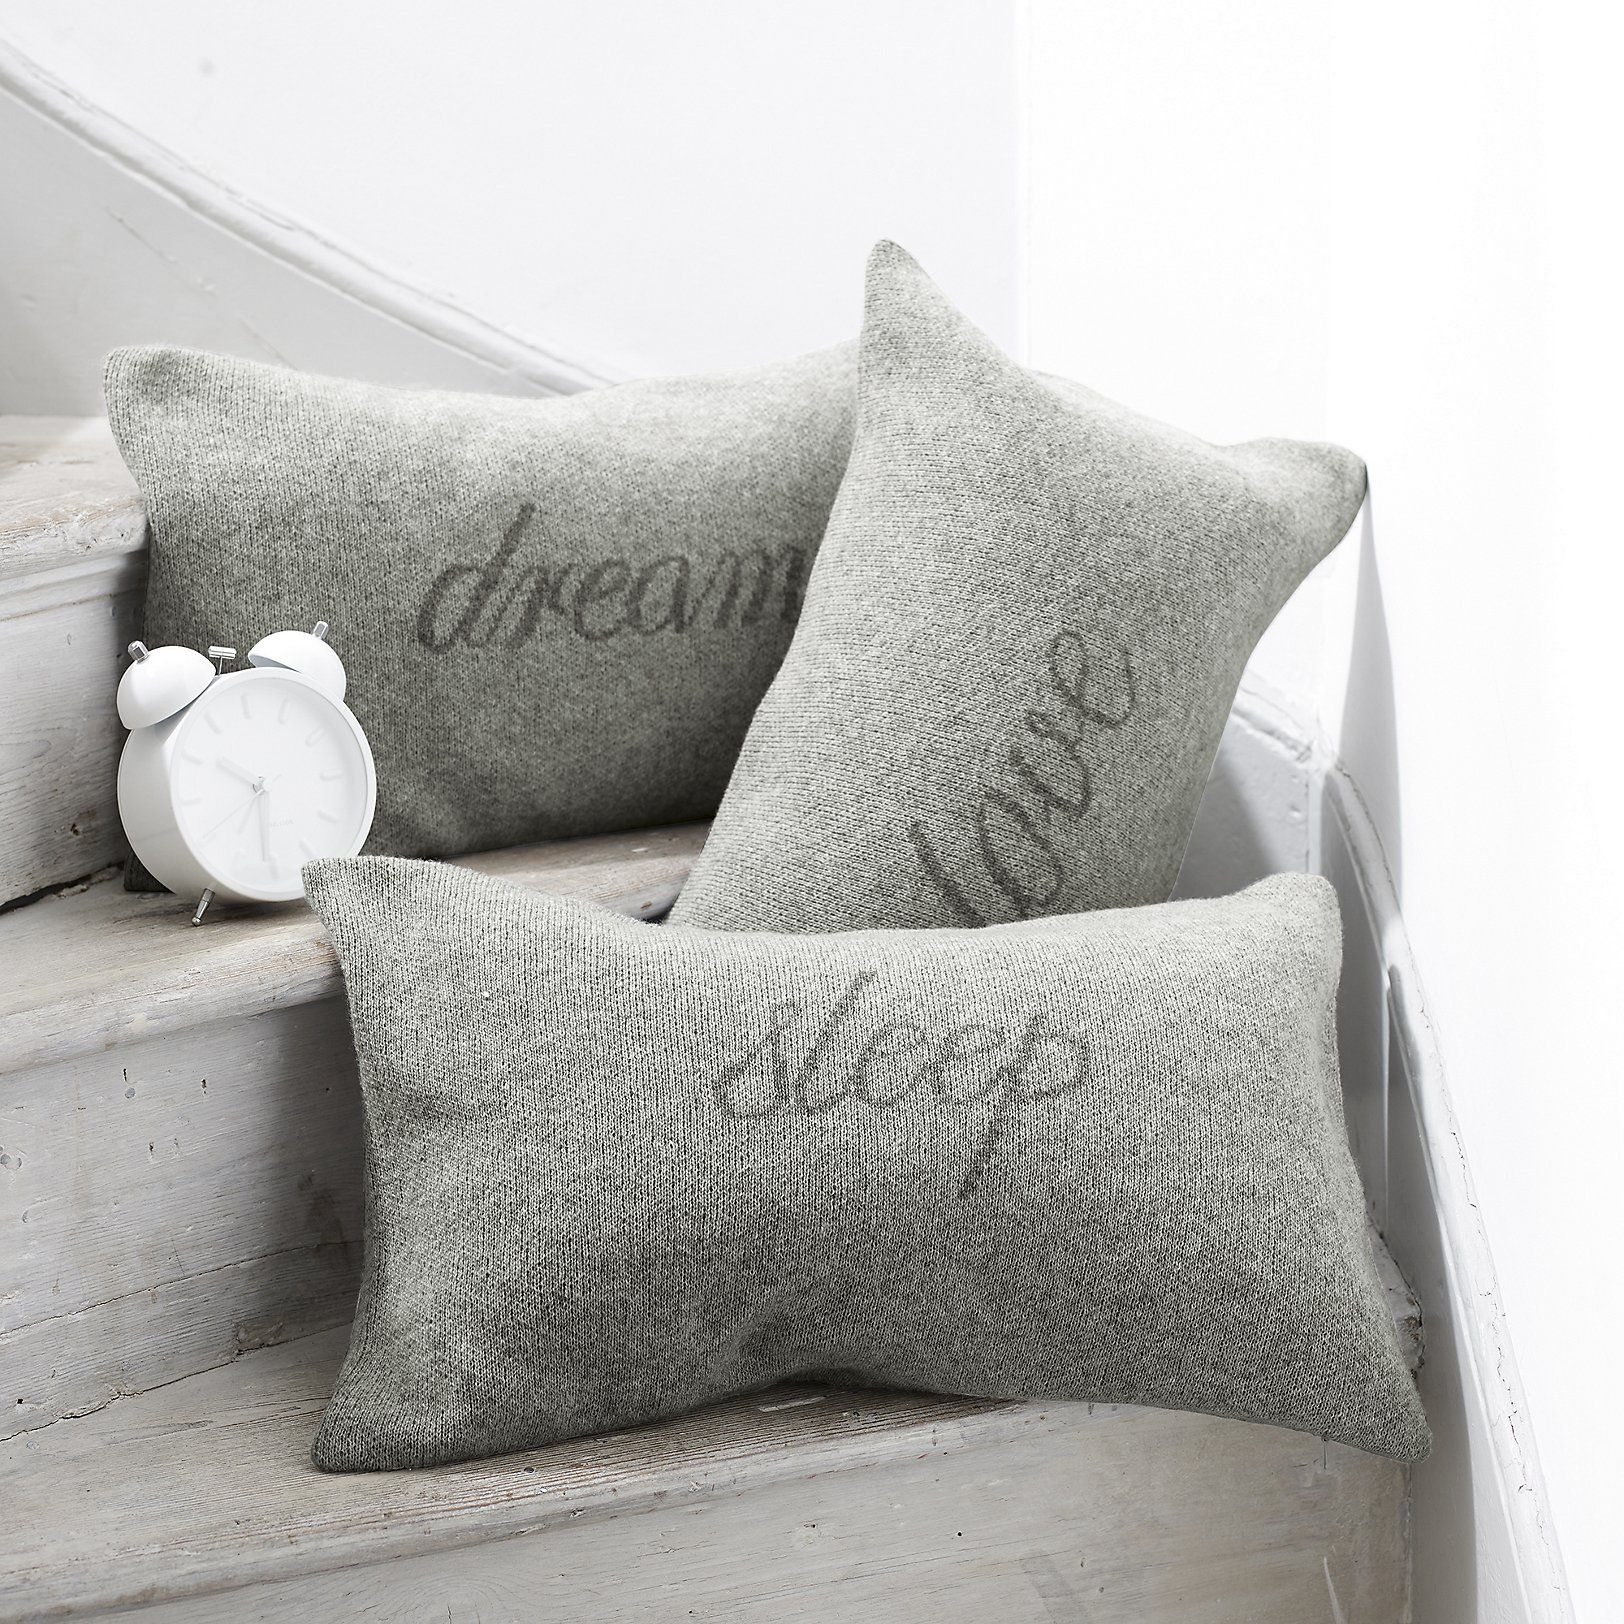 The White pany US Dream Cushion Cover